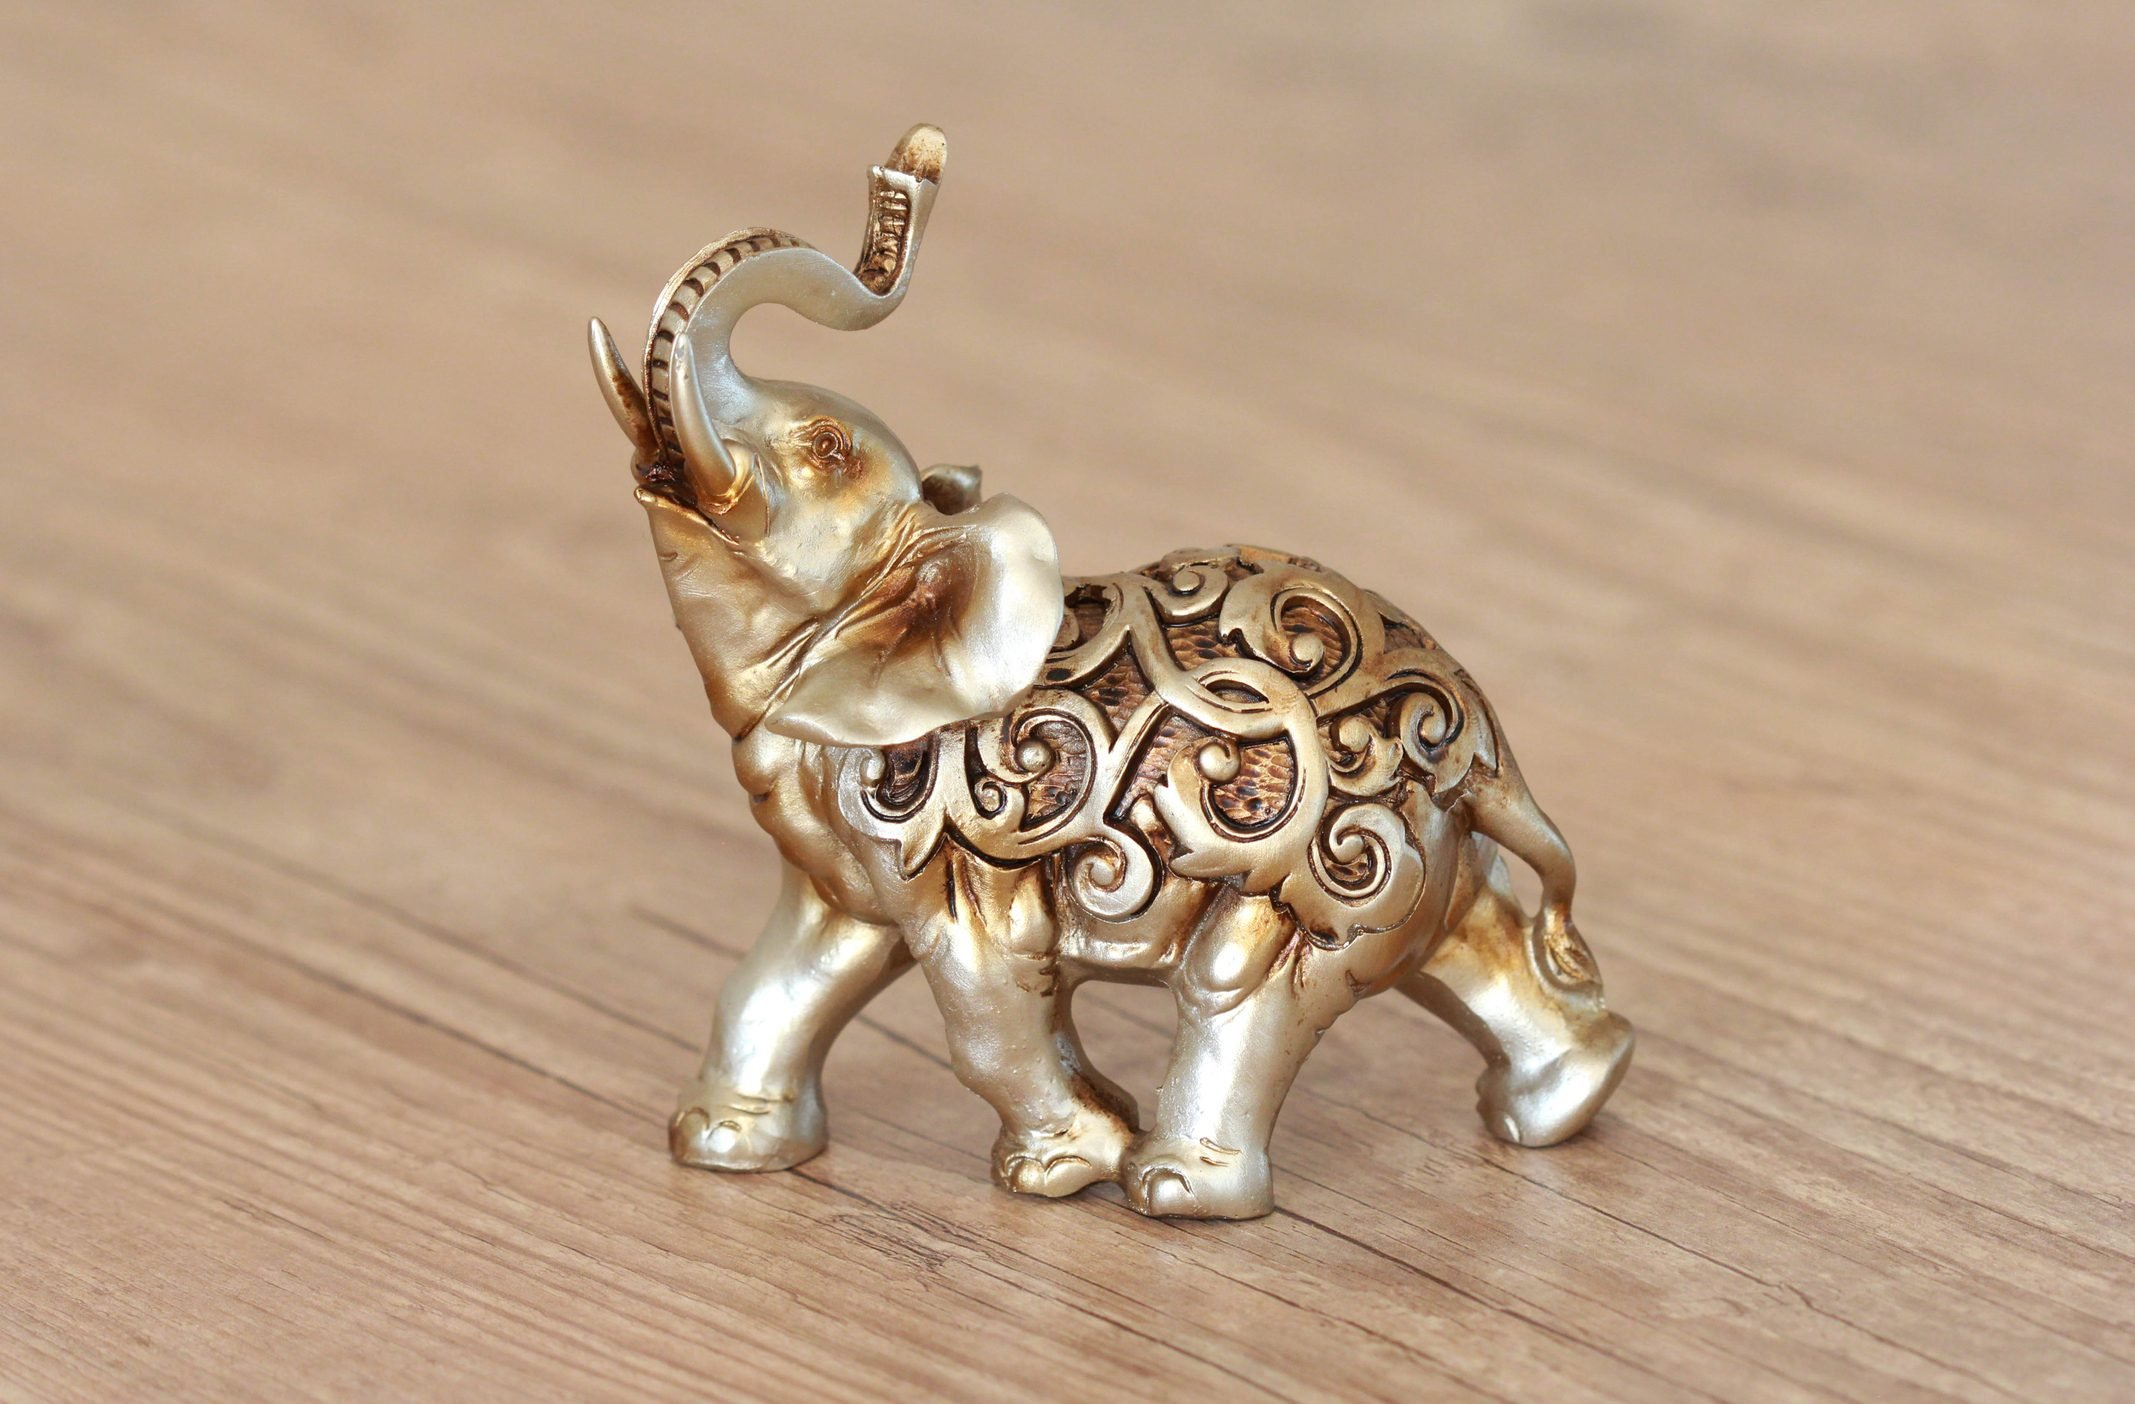 Statue of Hindu elephant golden